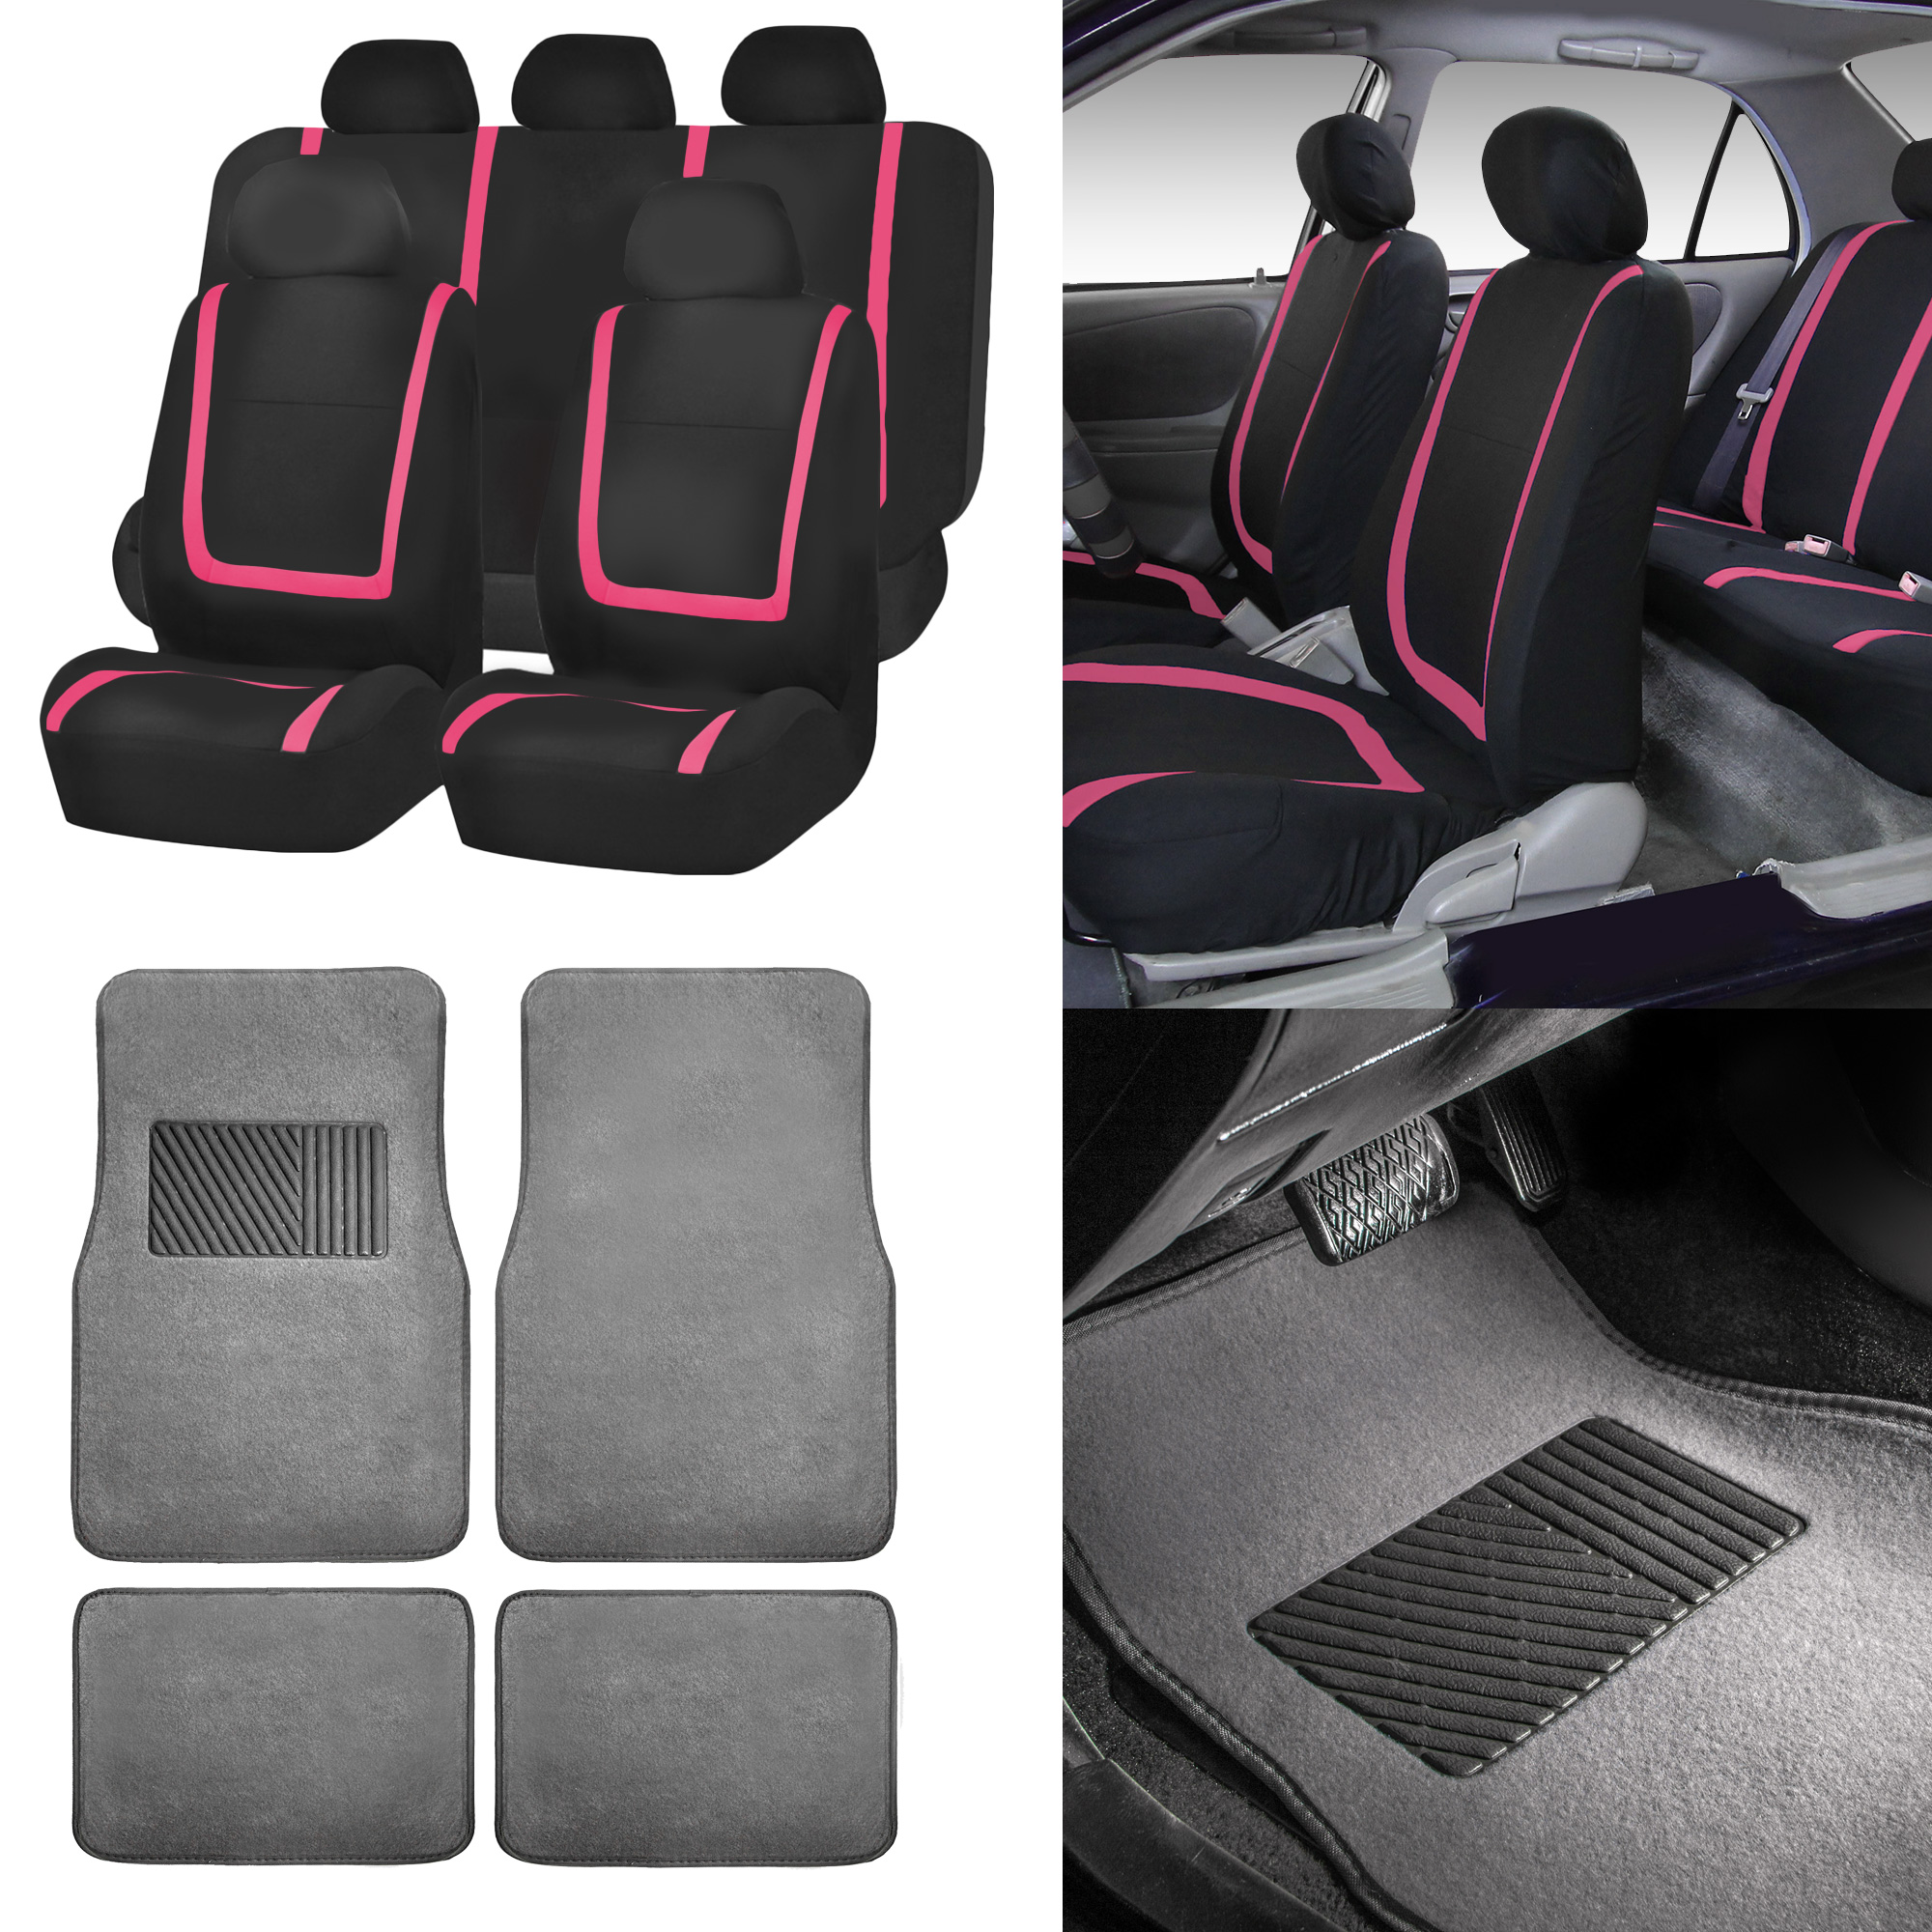 Black & Pink Car Seat Covers With Gray Carpet Floor Mats